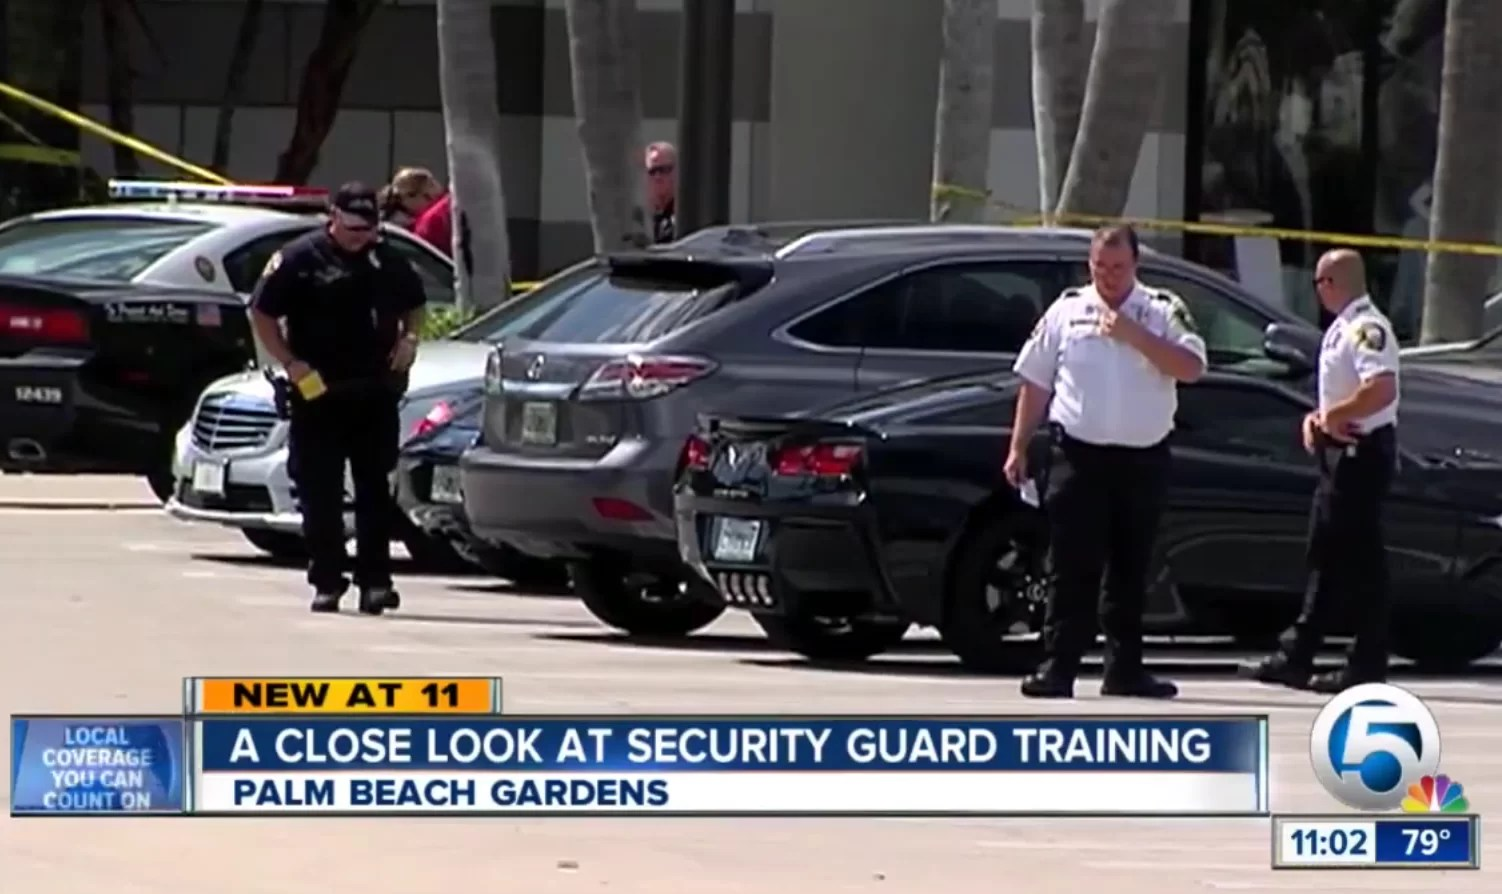 Armed Security Guard Certification